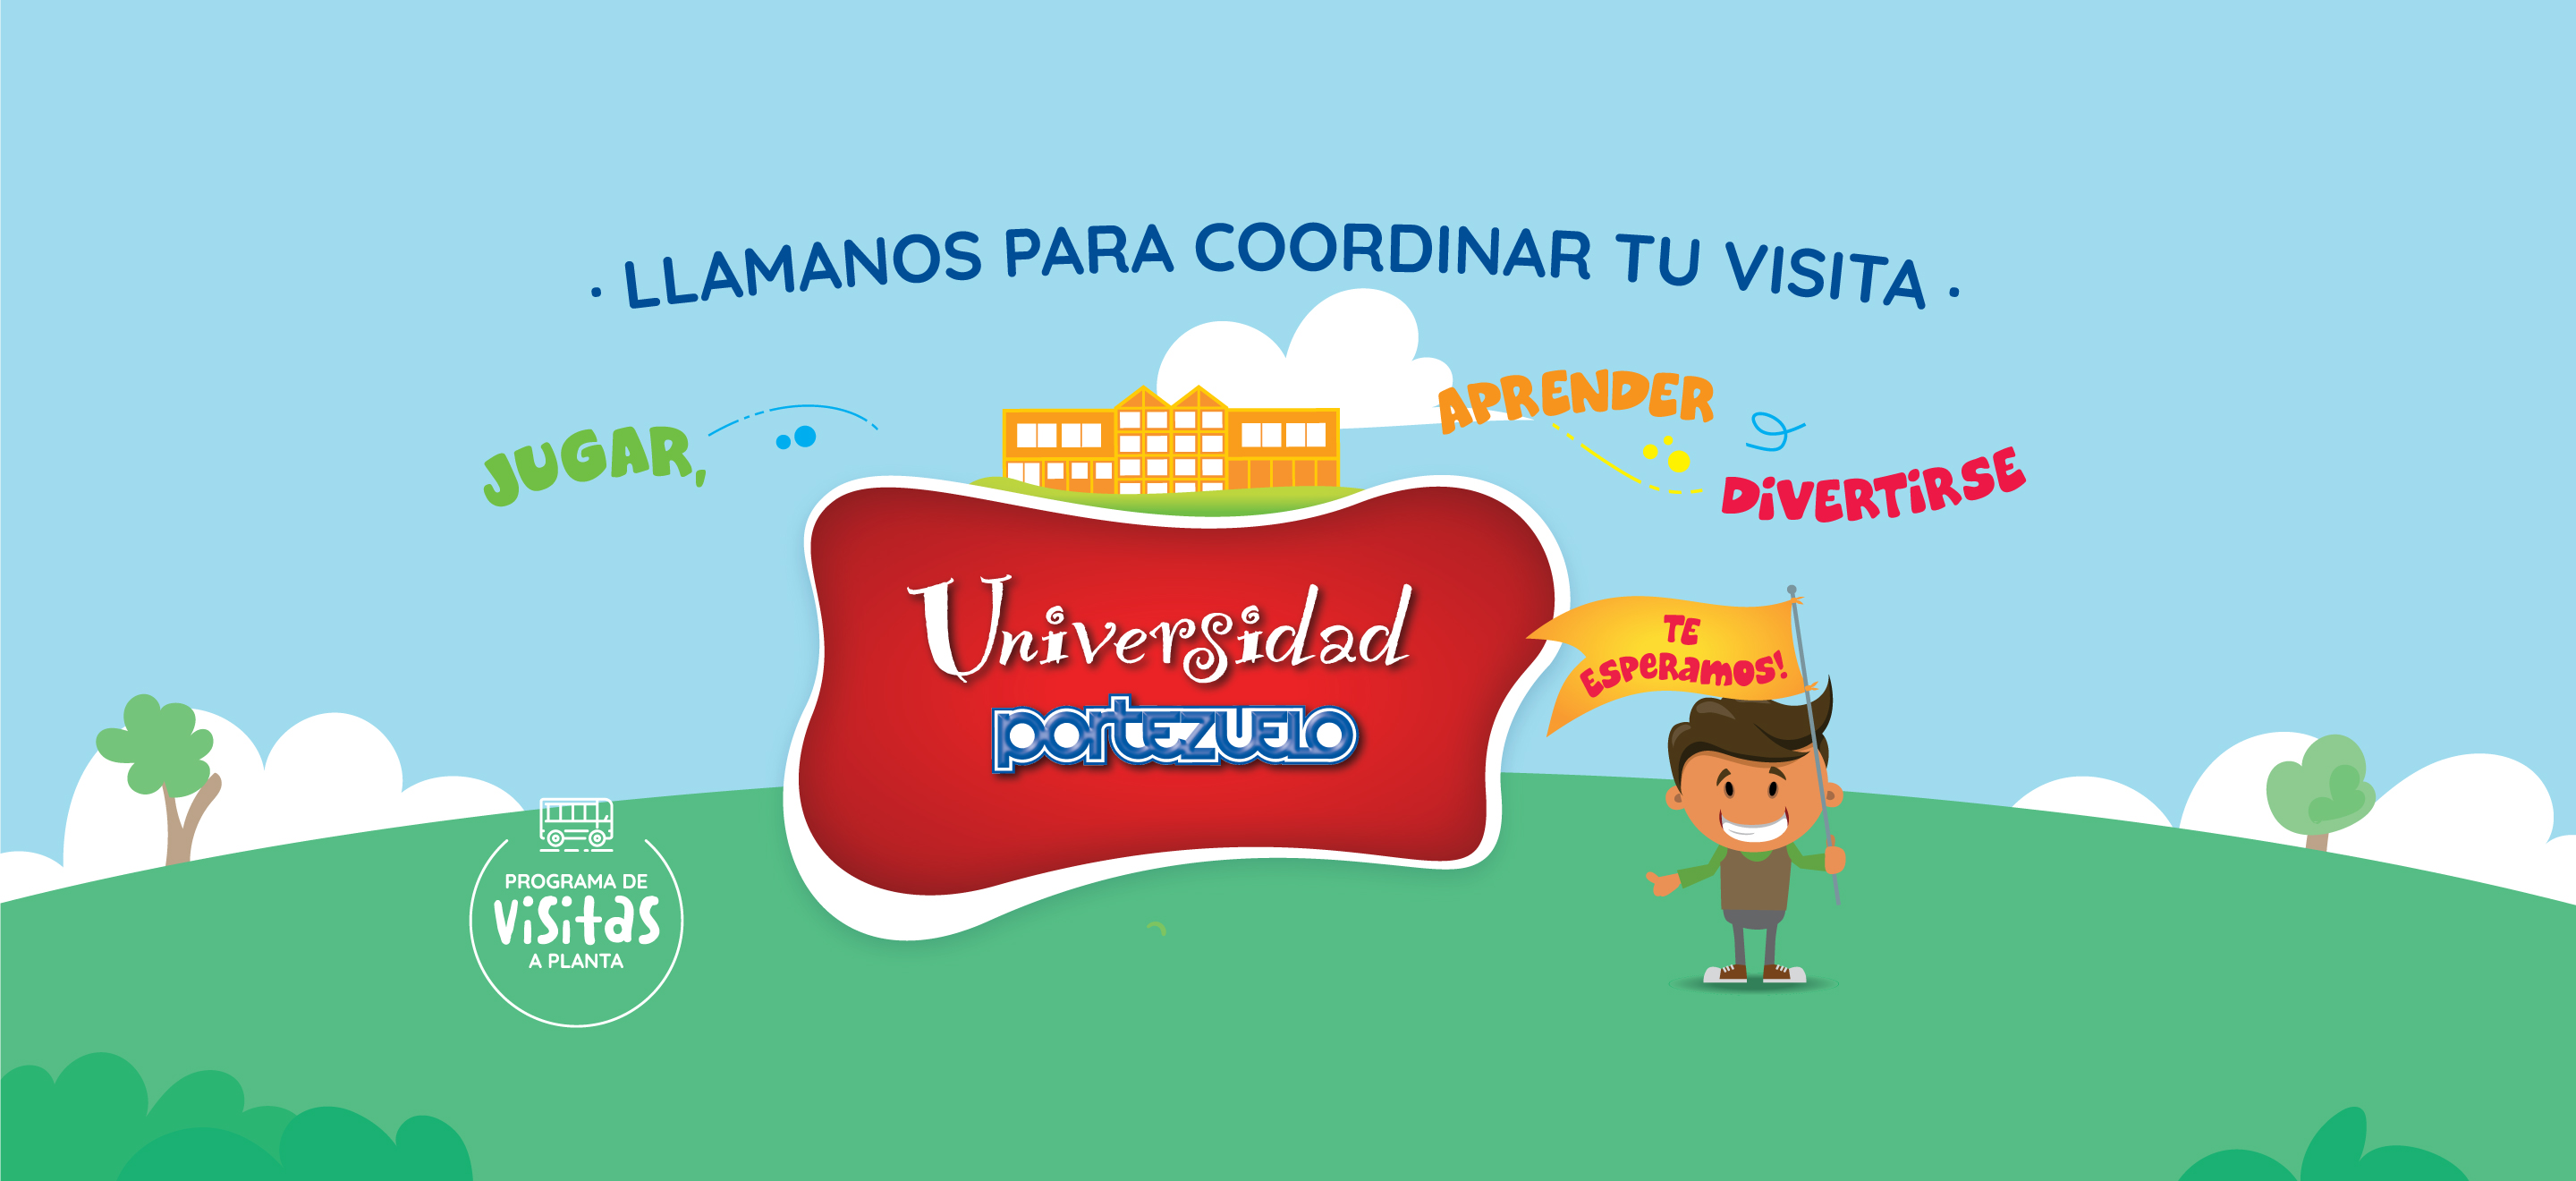 Universidad Portezuelo